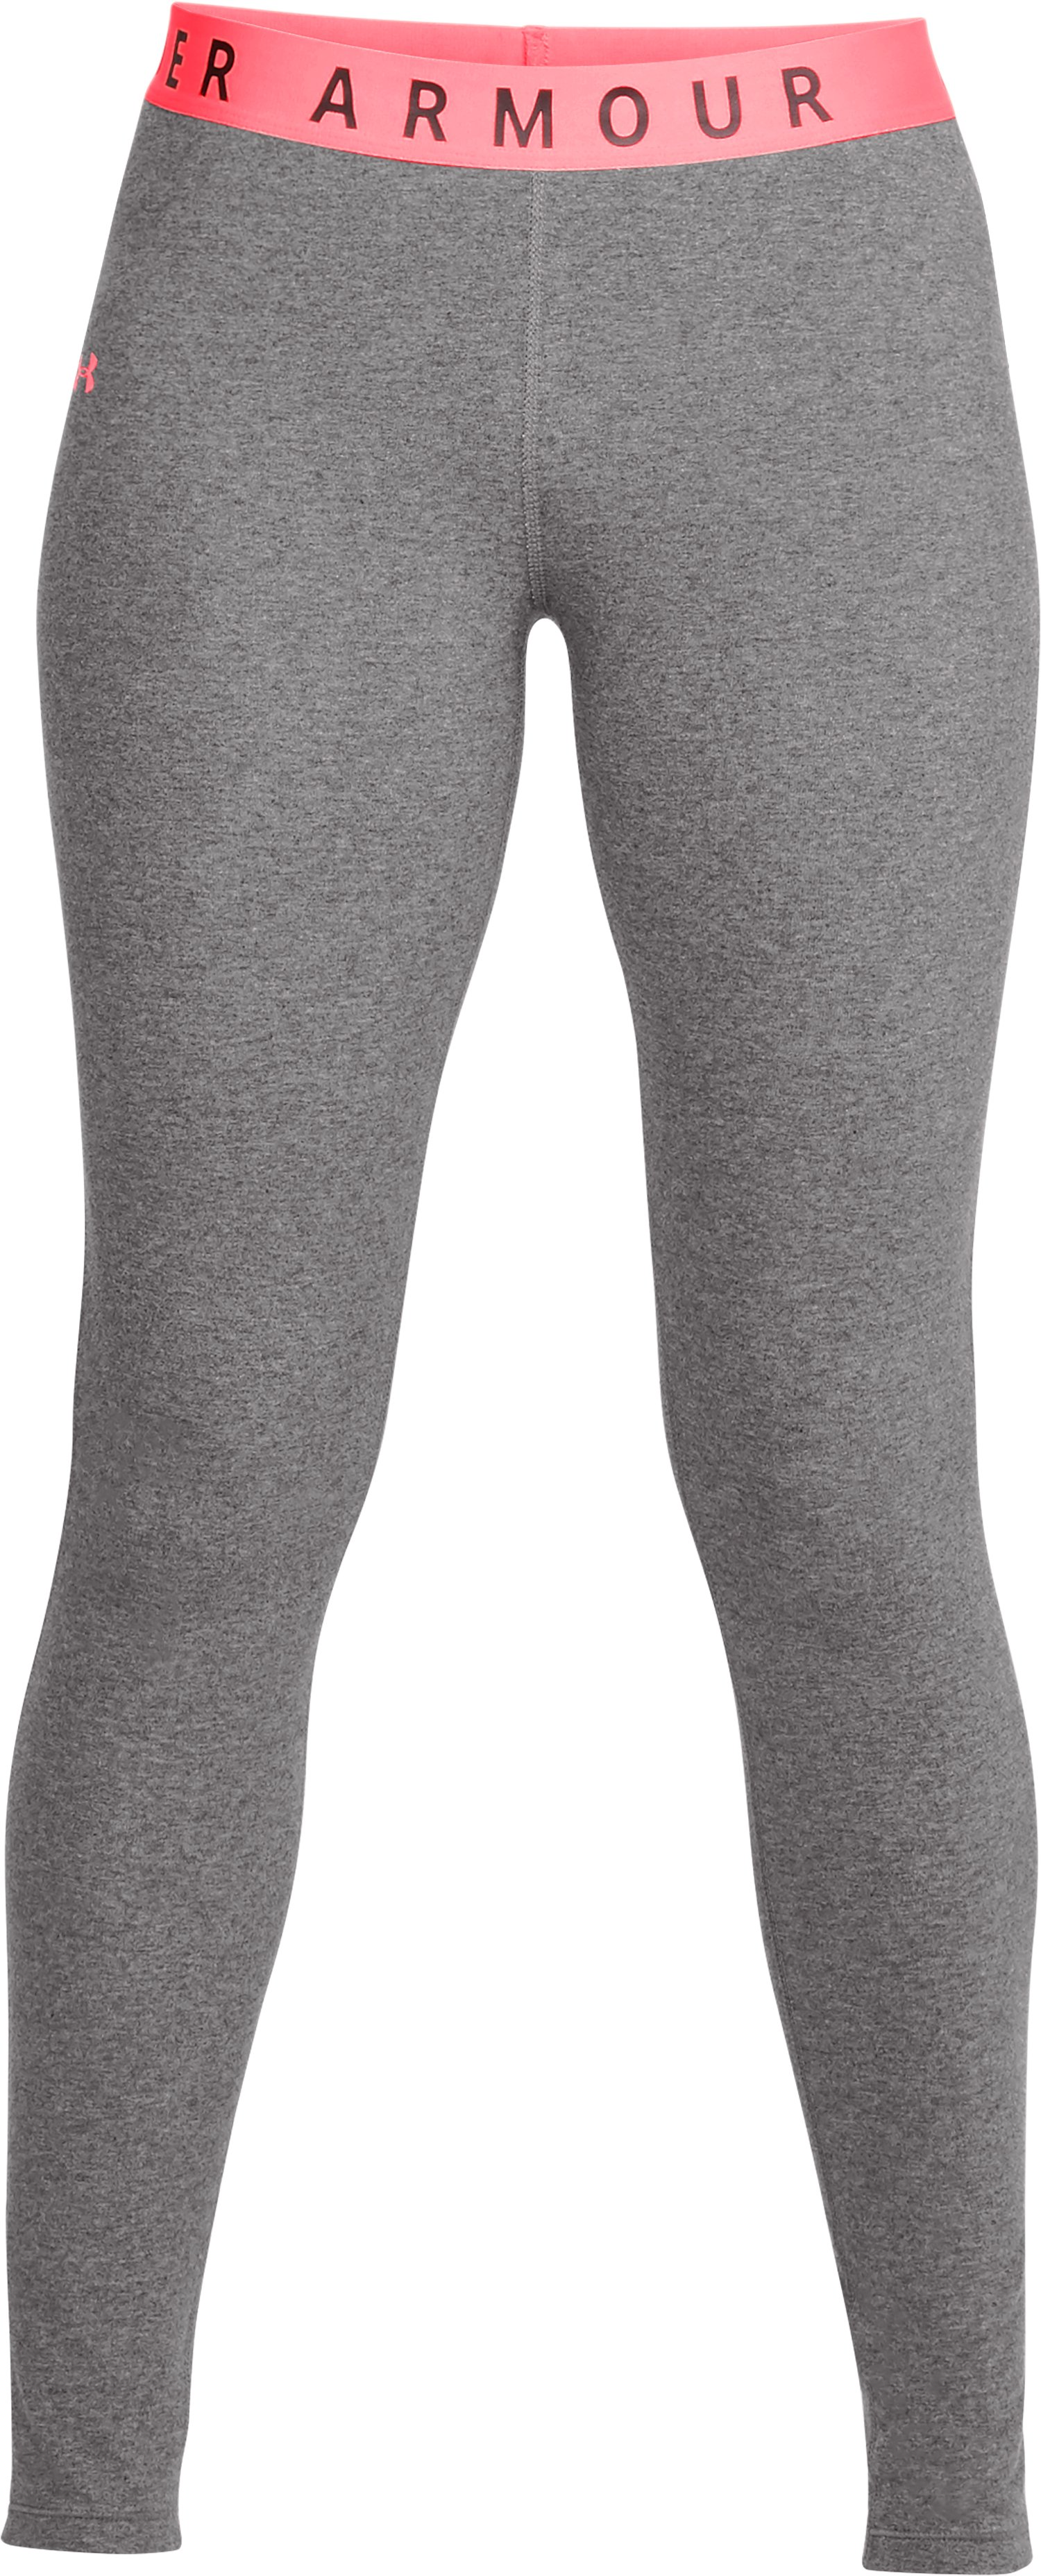 Women's UA Favorite Leggings, CHARCOAL LIGHT HEATHER, undefined